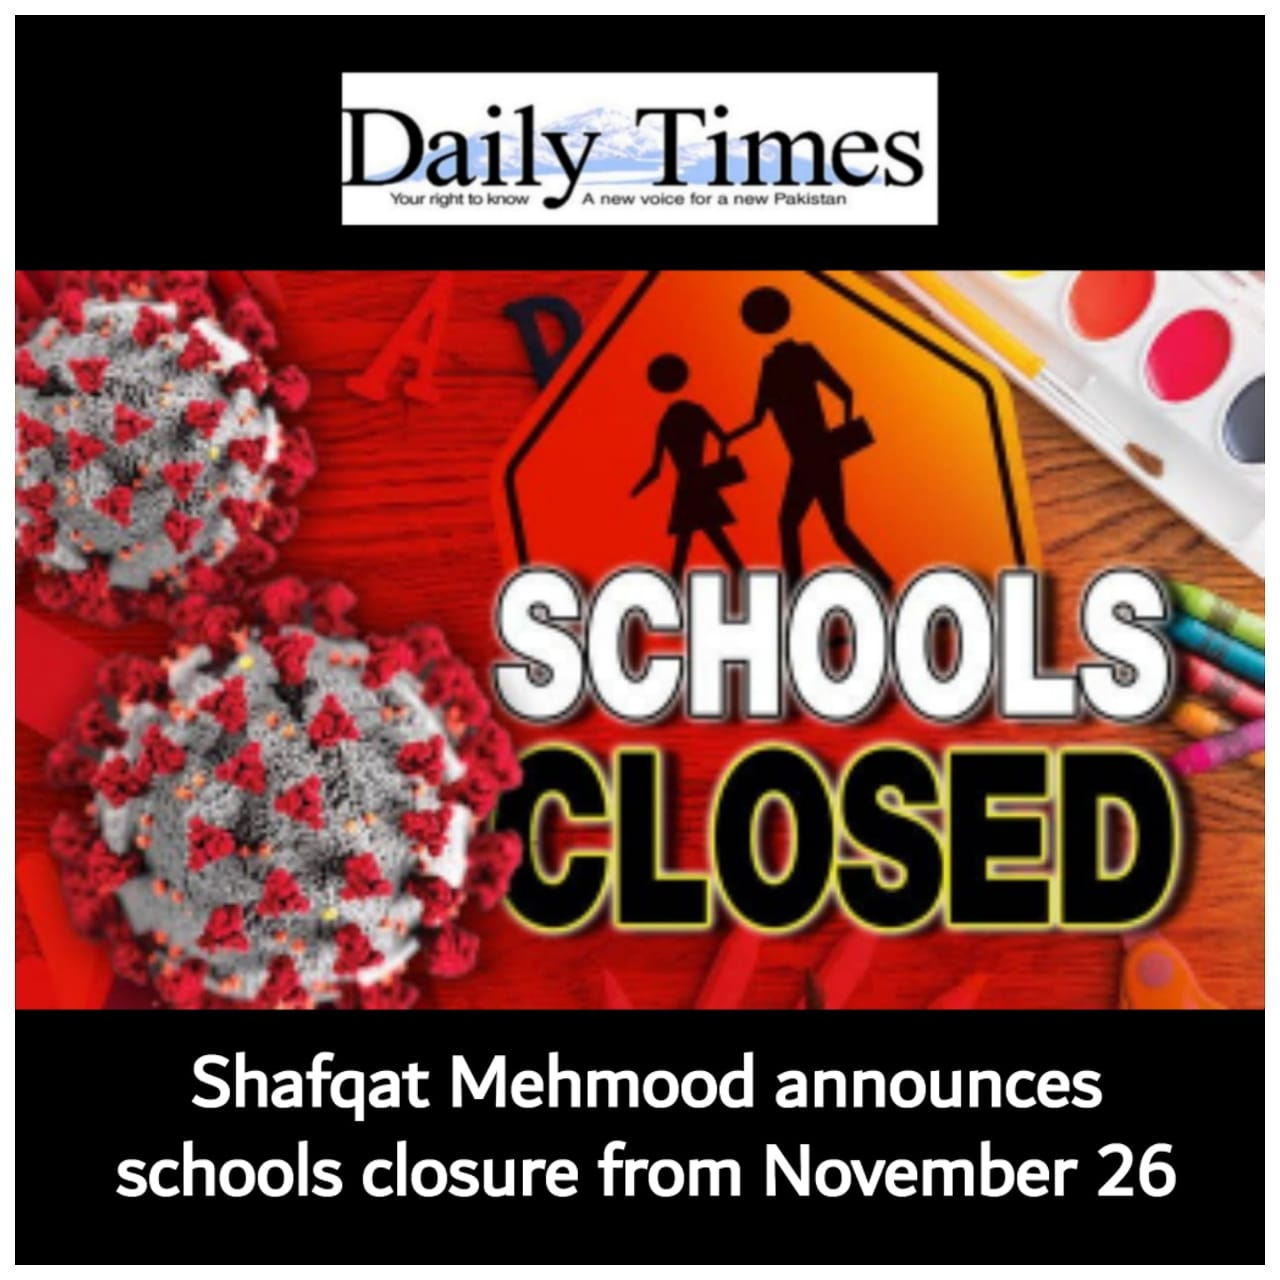 Shafqat Mehmood announces schools closure from November 26